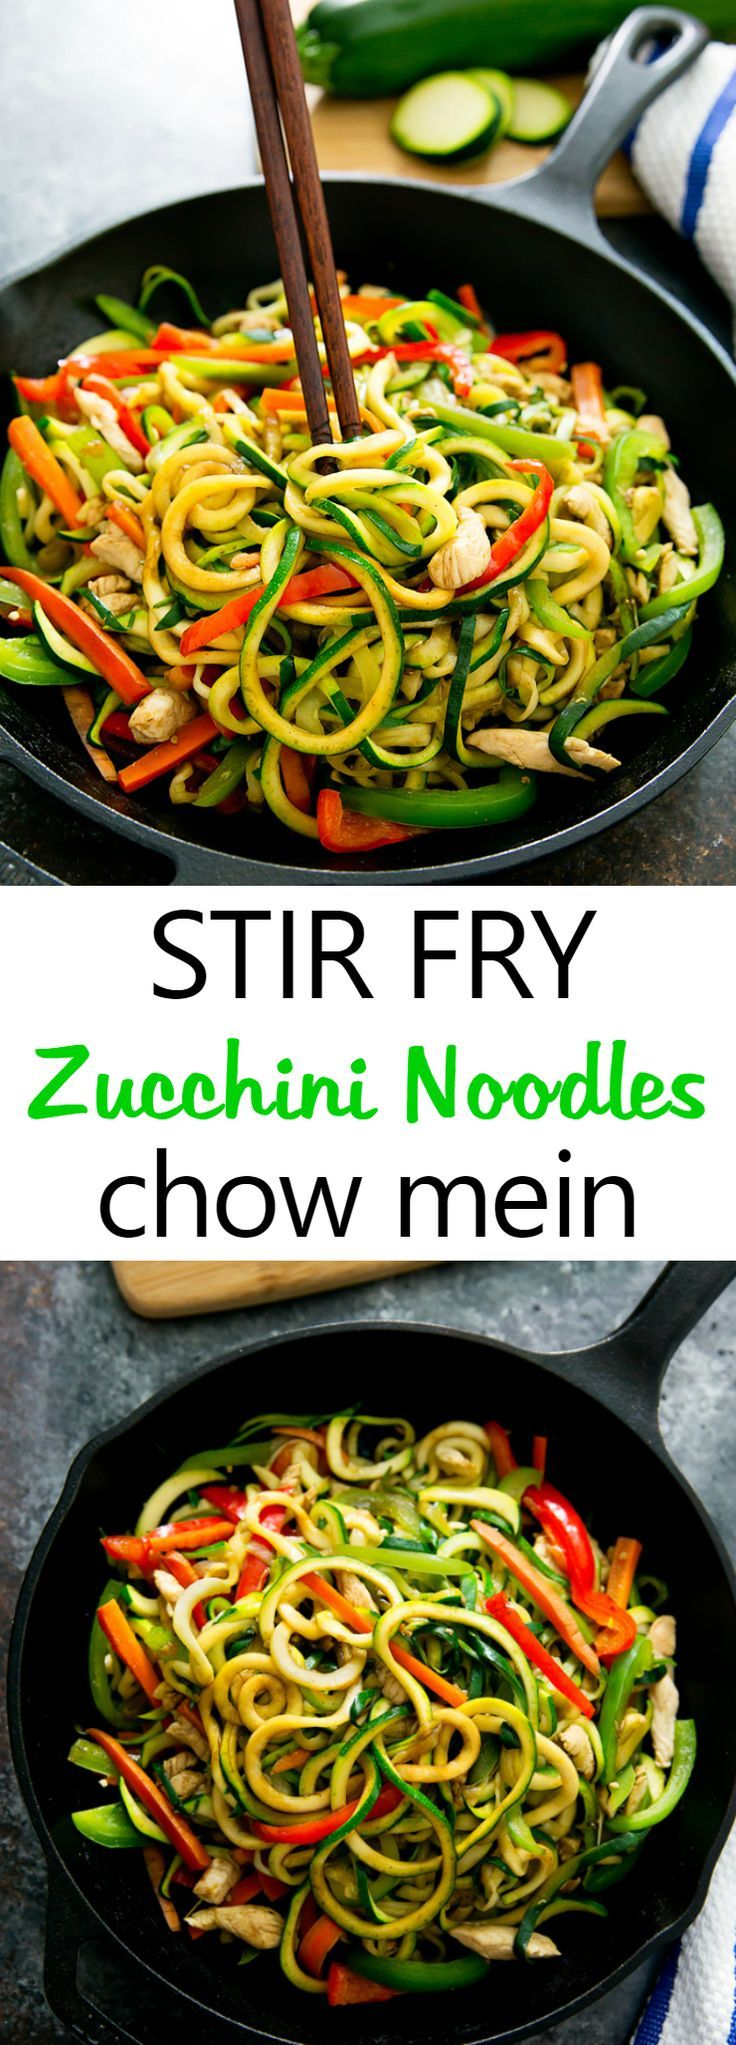 Stir Fry Zucchini Noodles Chow Mein. This low carb version of the popular Chinese noodle dish is ready in less than 30 minutes!